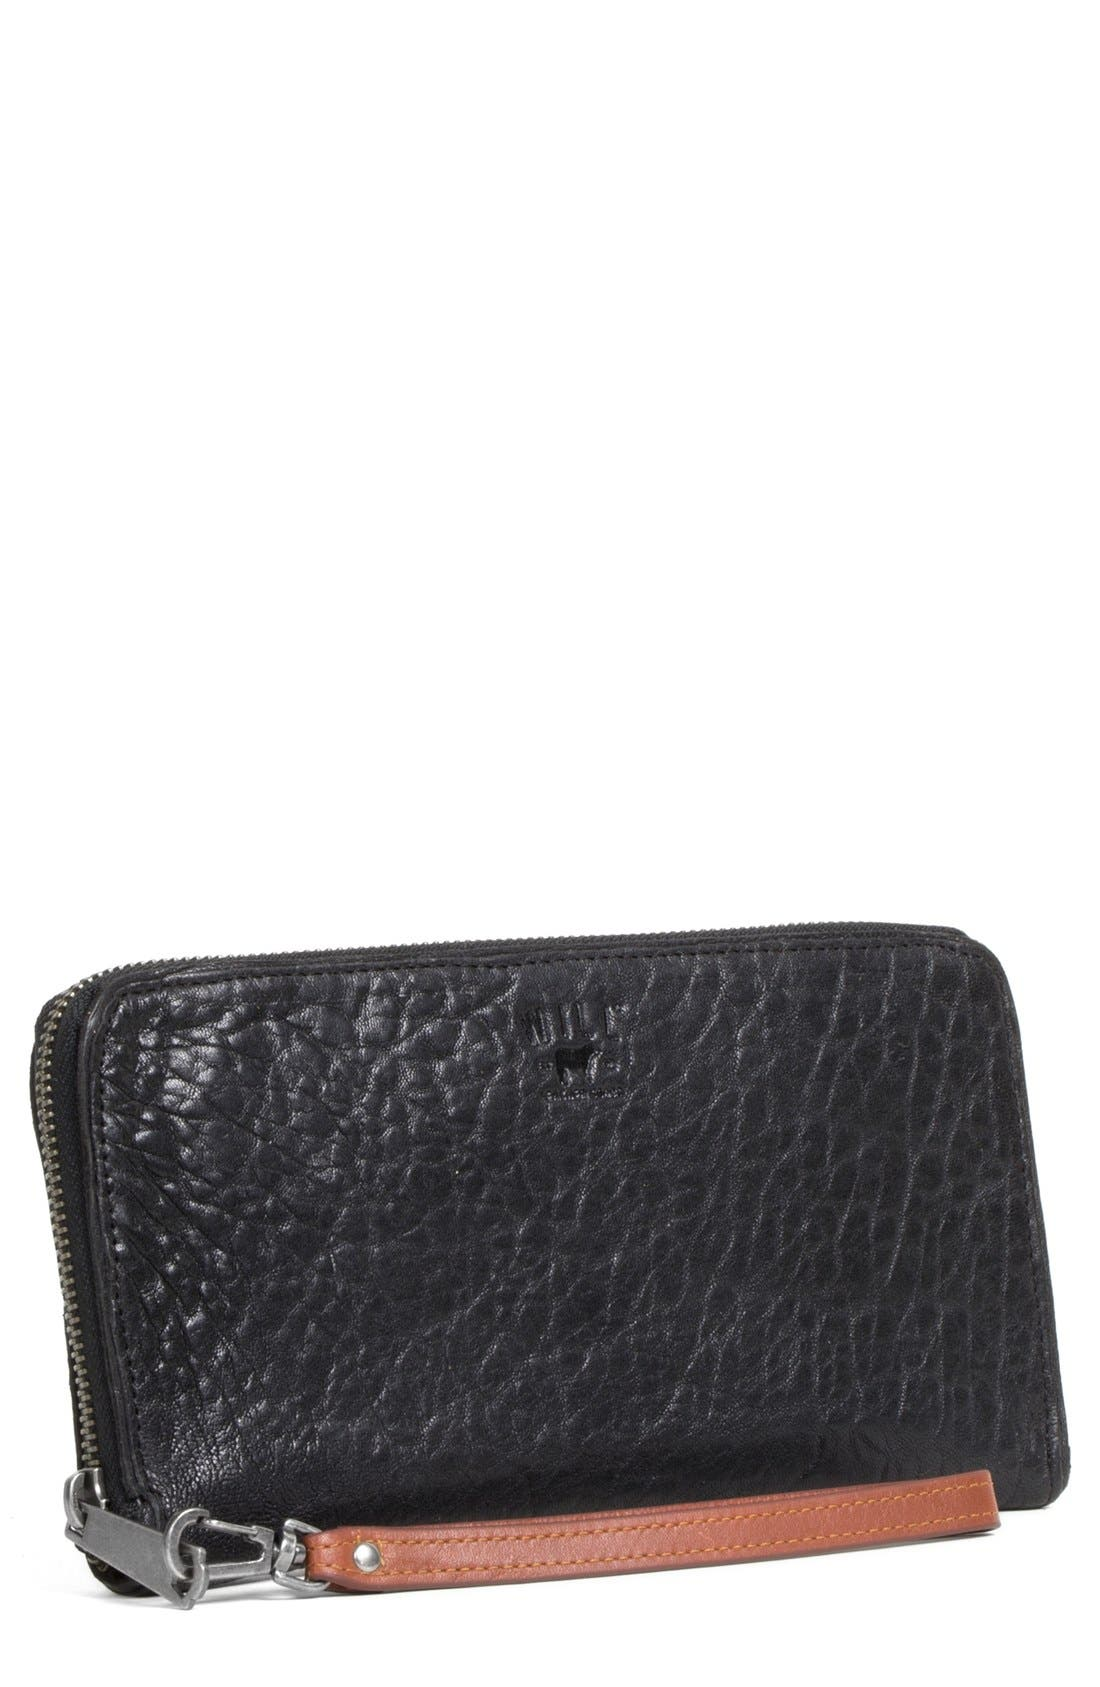 'Imogen' Washed Italian Lambskin Leather Checkbook Clutch,                         Main,                         color, 015